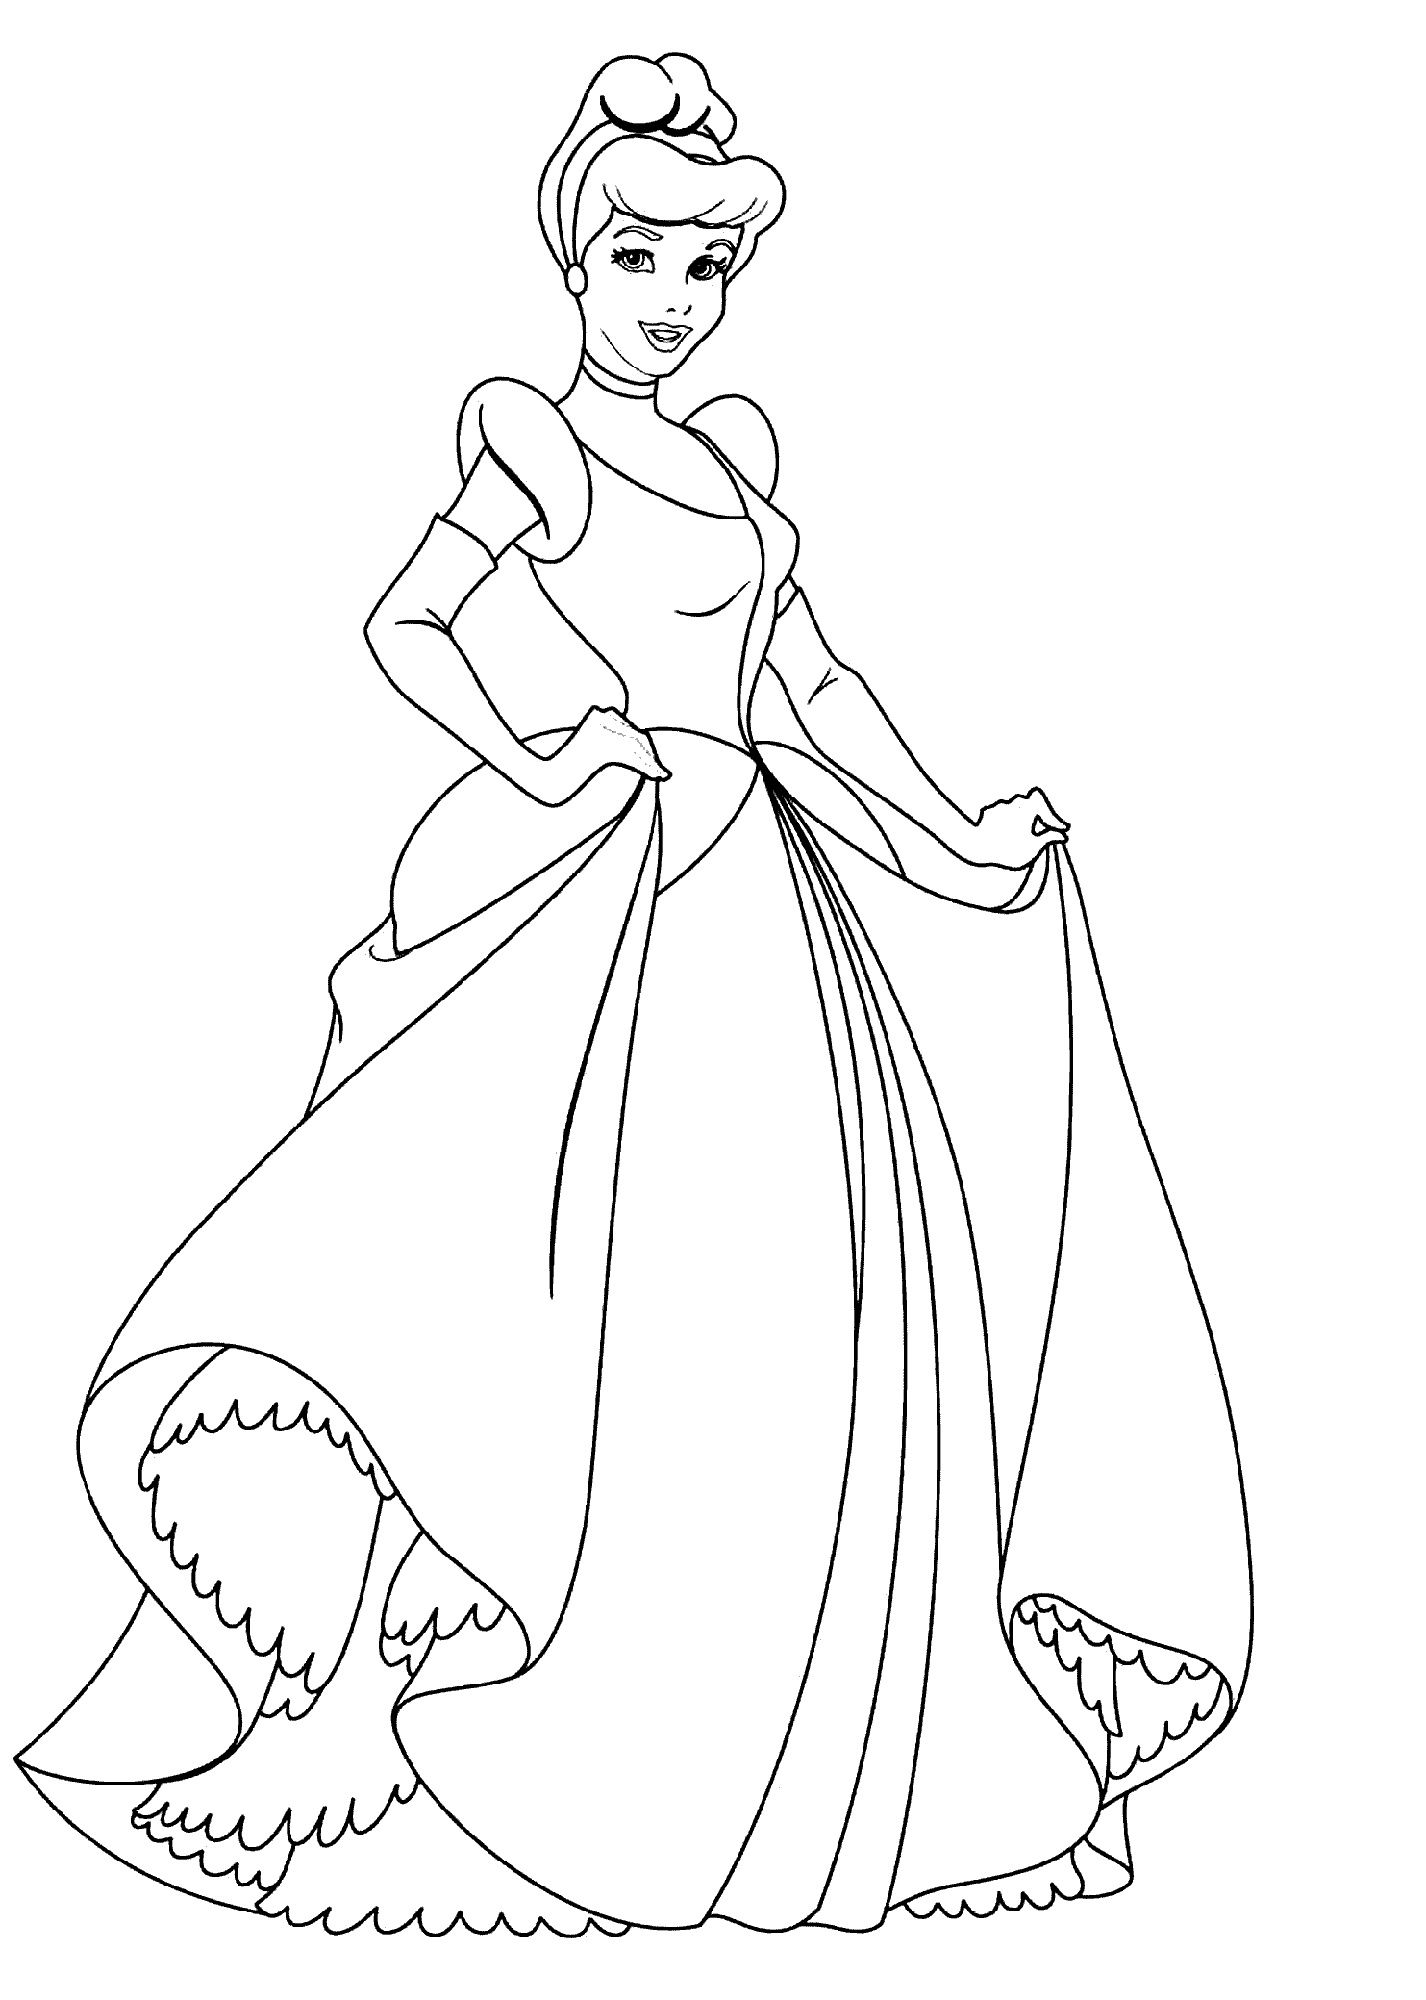 Princess Cinderella Coloring Pages For Coloring Class K5 Worksheets Princess Coloring Princess Coloring Pages Cinderella Coloring Pages